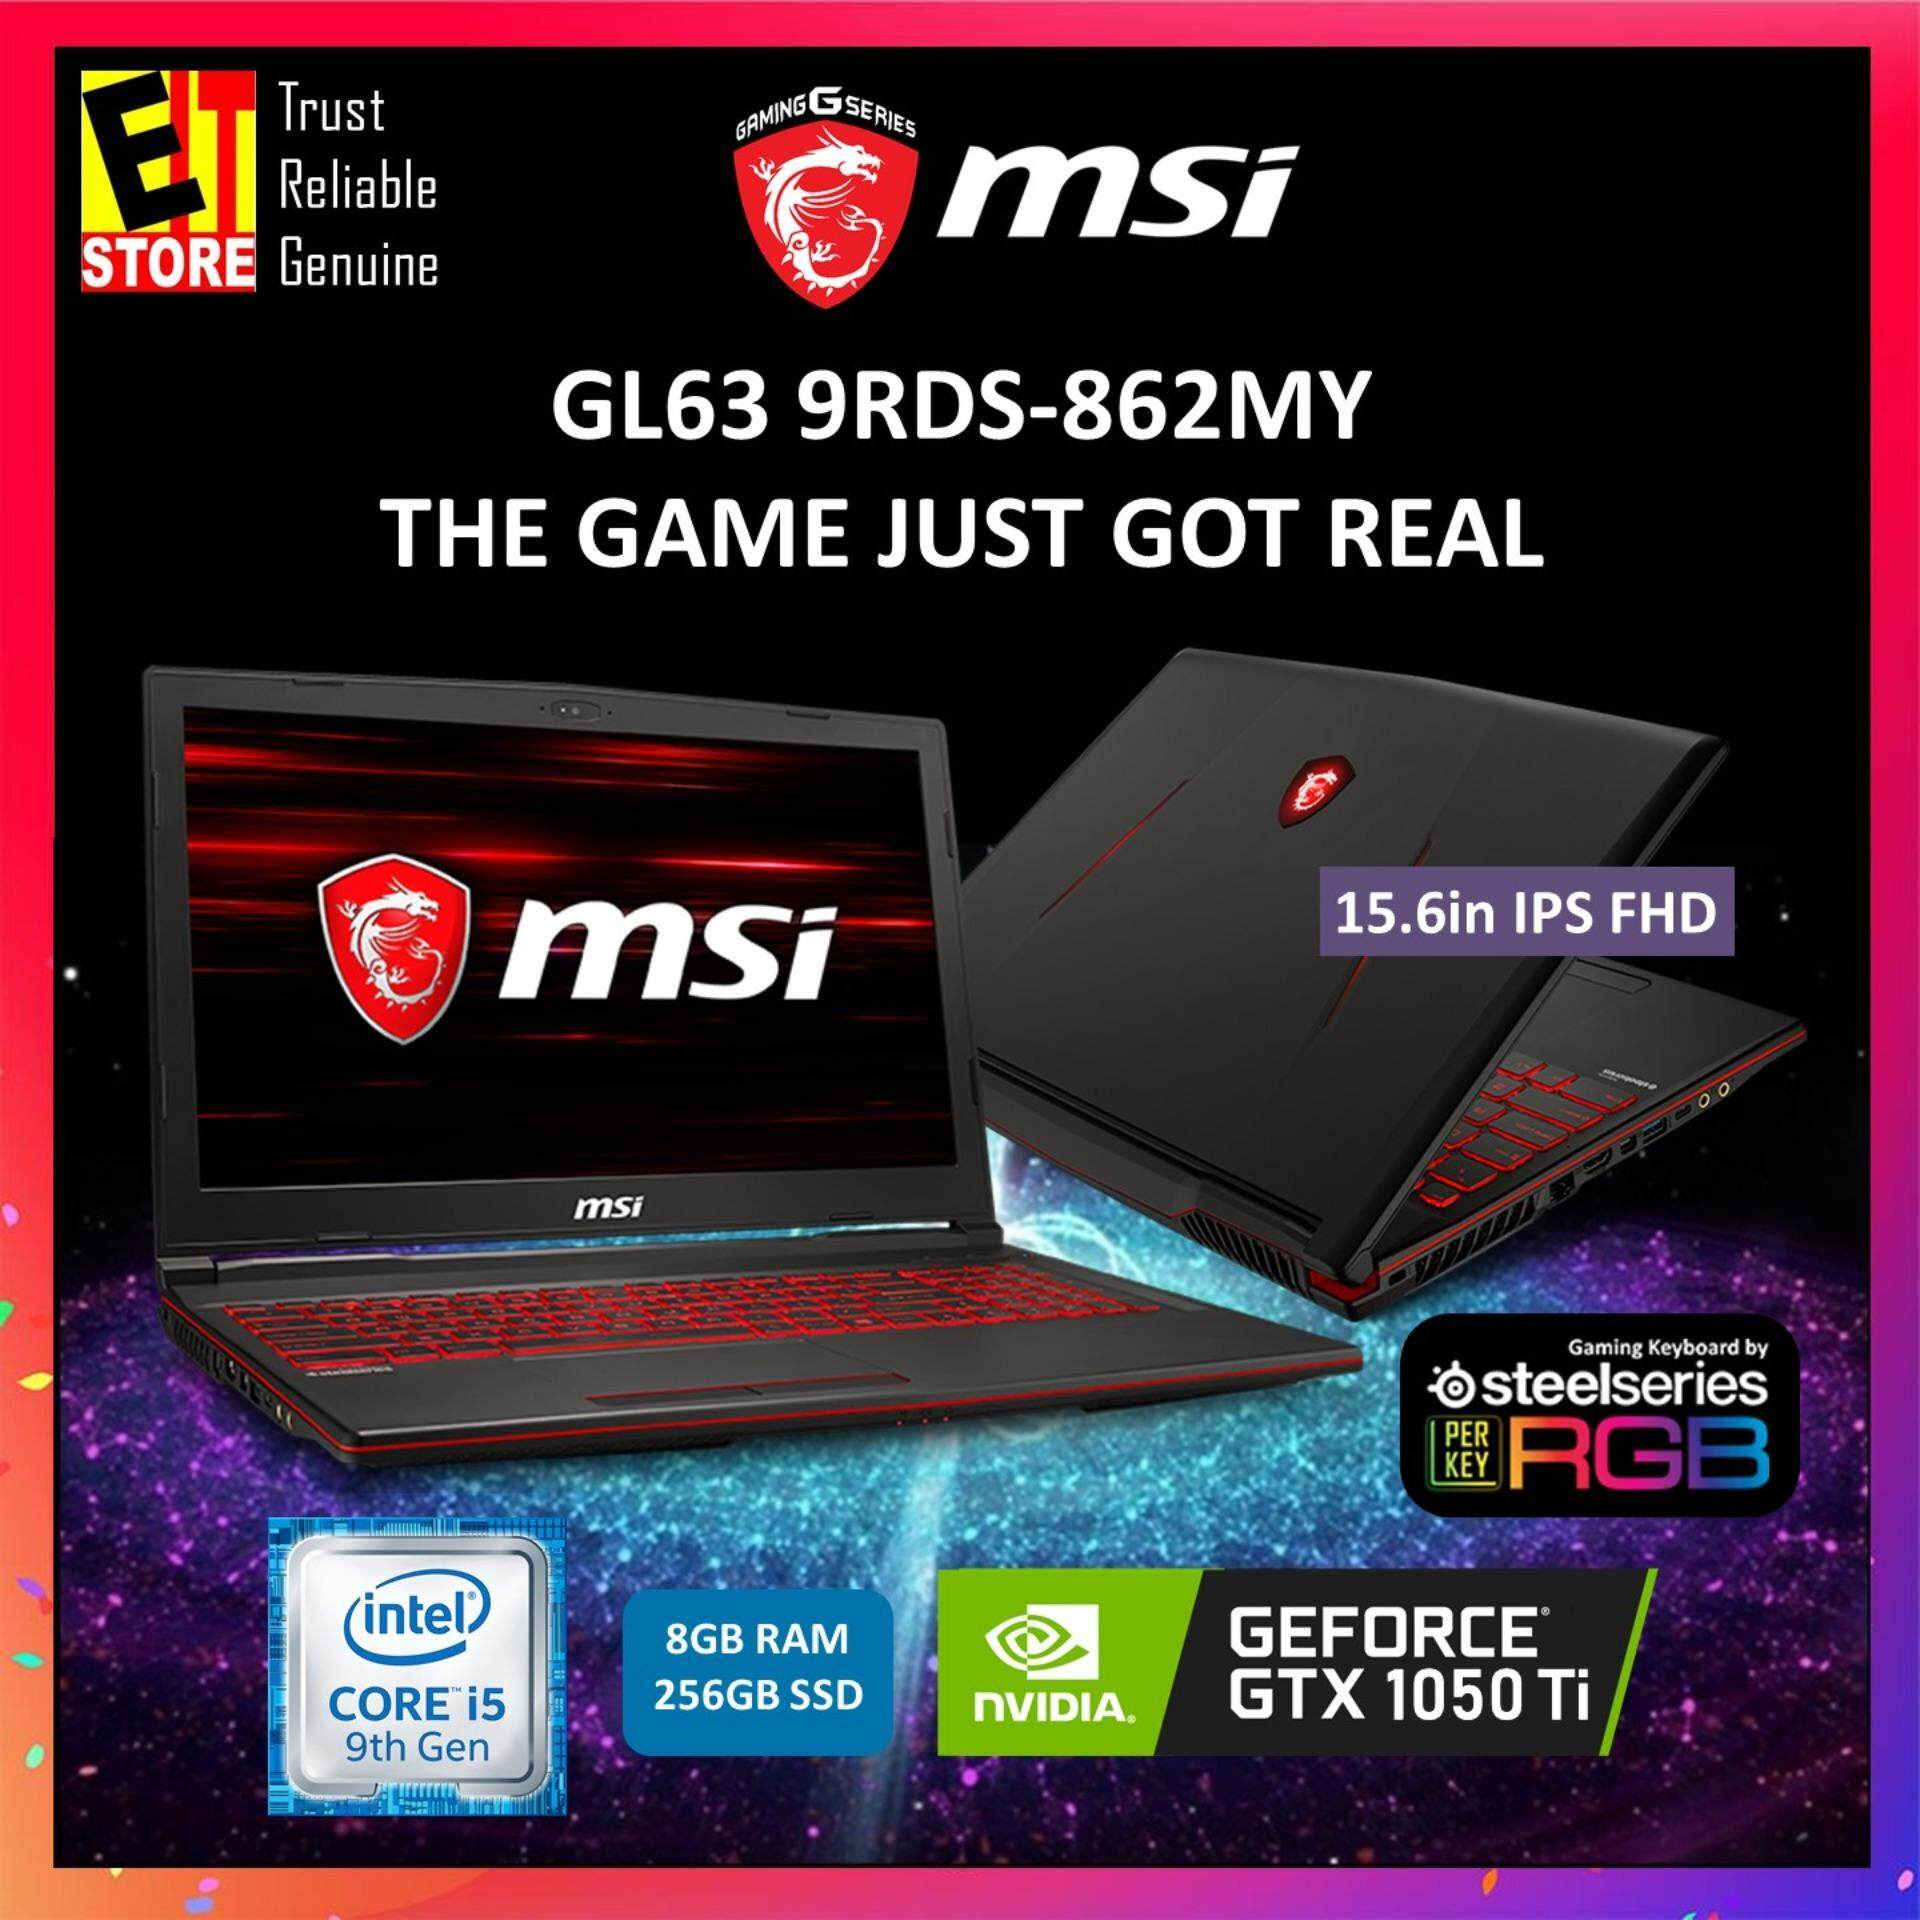 MSI GL63 9RDS-862MY BLACK (I5-9300H+HM370/8G/256G SSD/GTX 1050 Ti 4G/15.6/W10/2YRS) + BACKPACK Malaysia